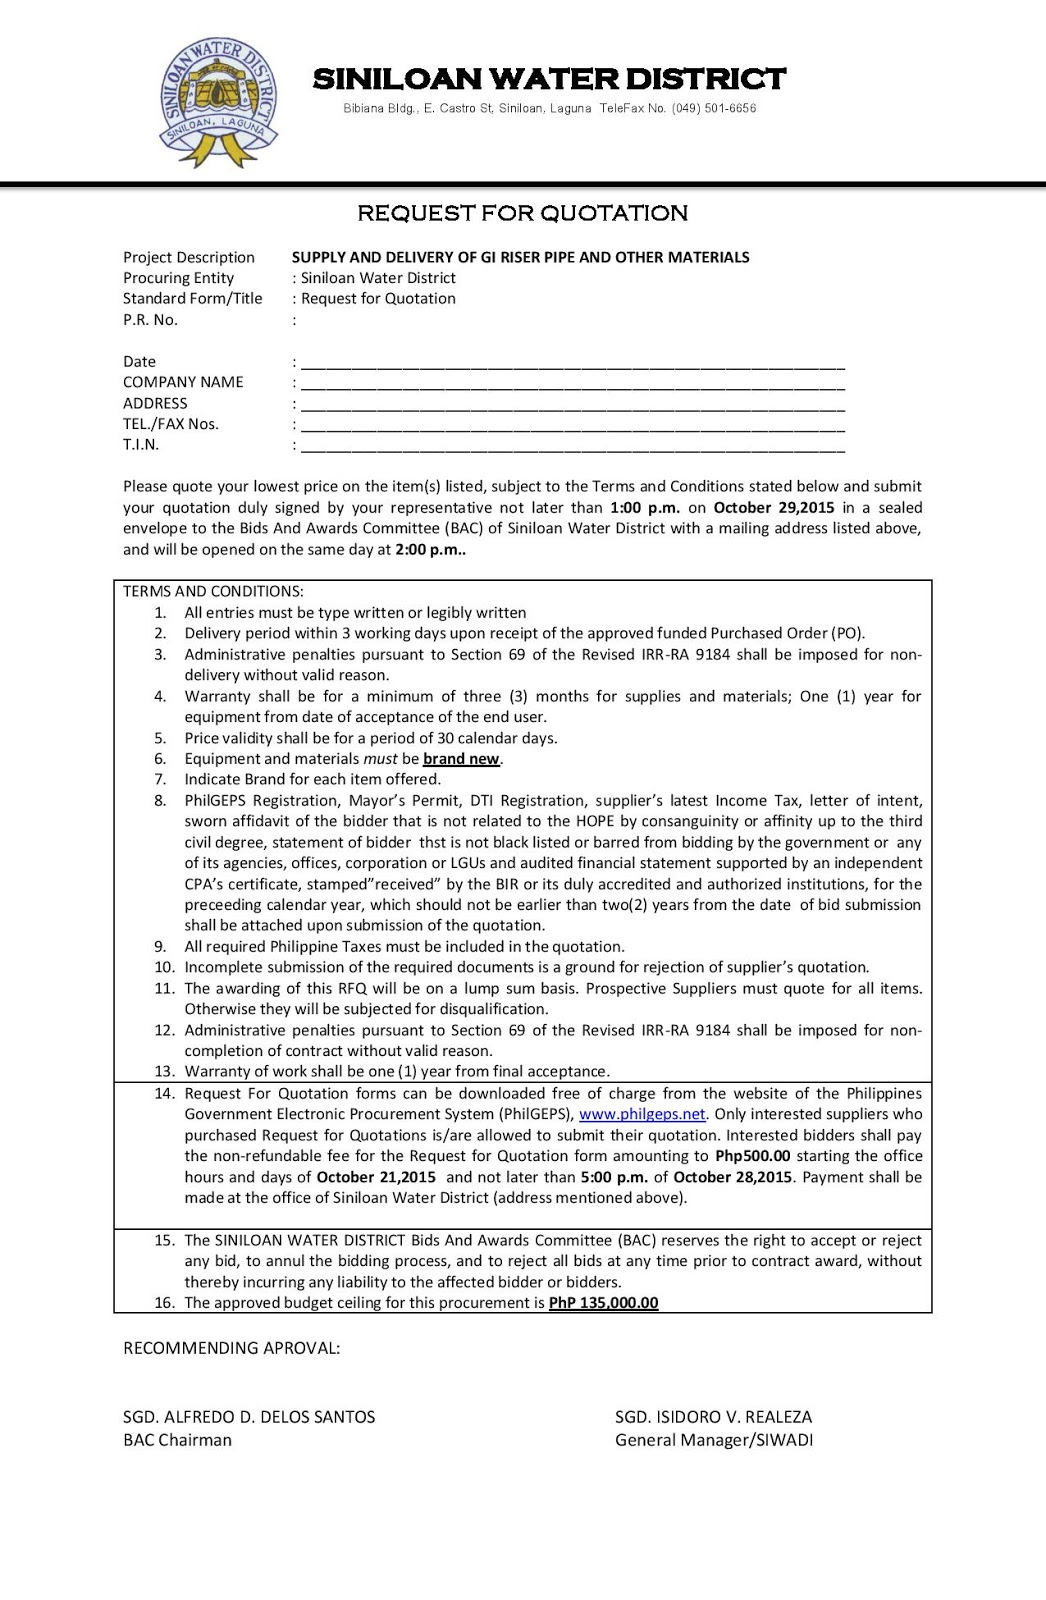 Siniloan Water District: Request for Quotation: SUPPLY AND